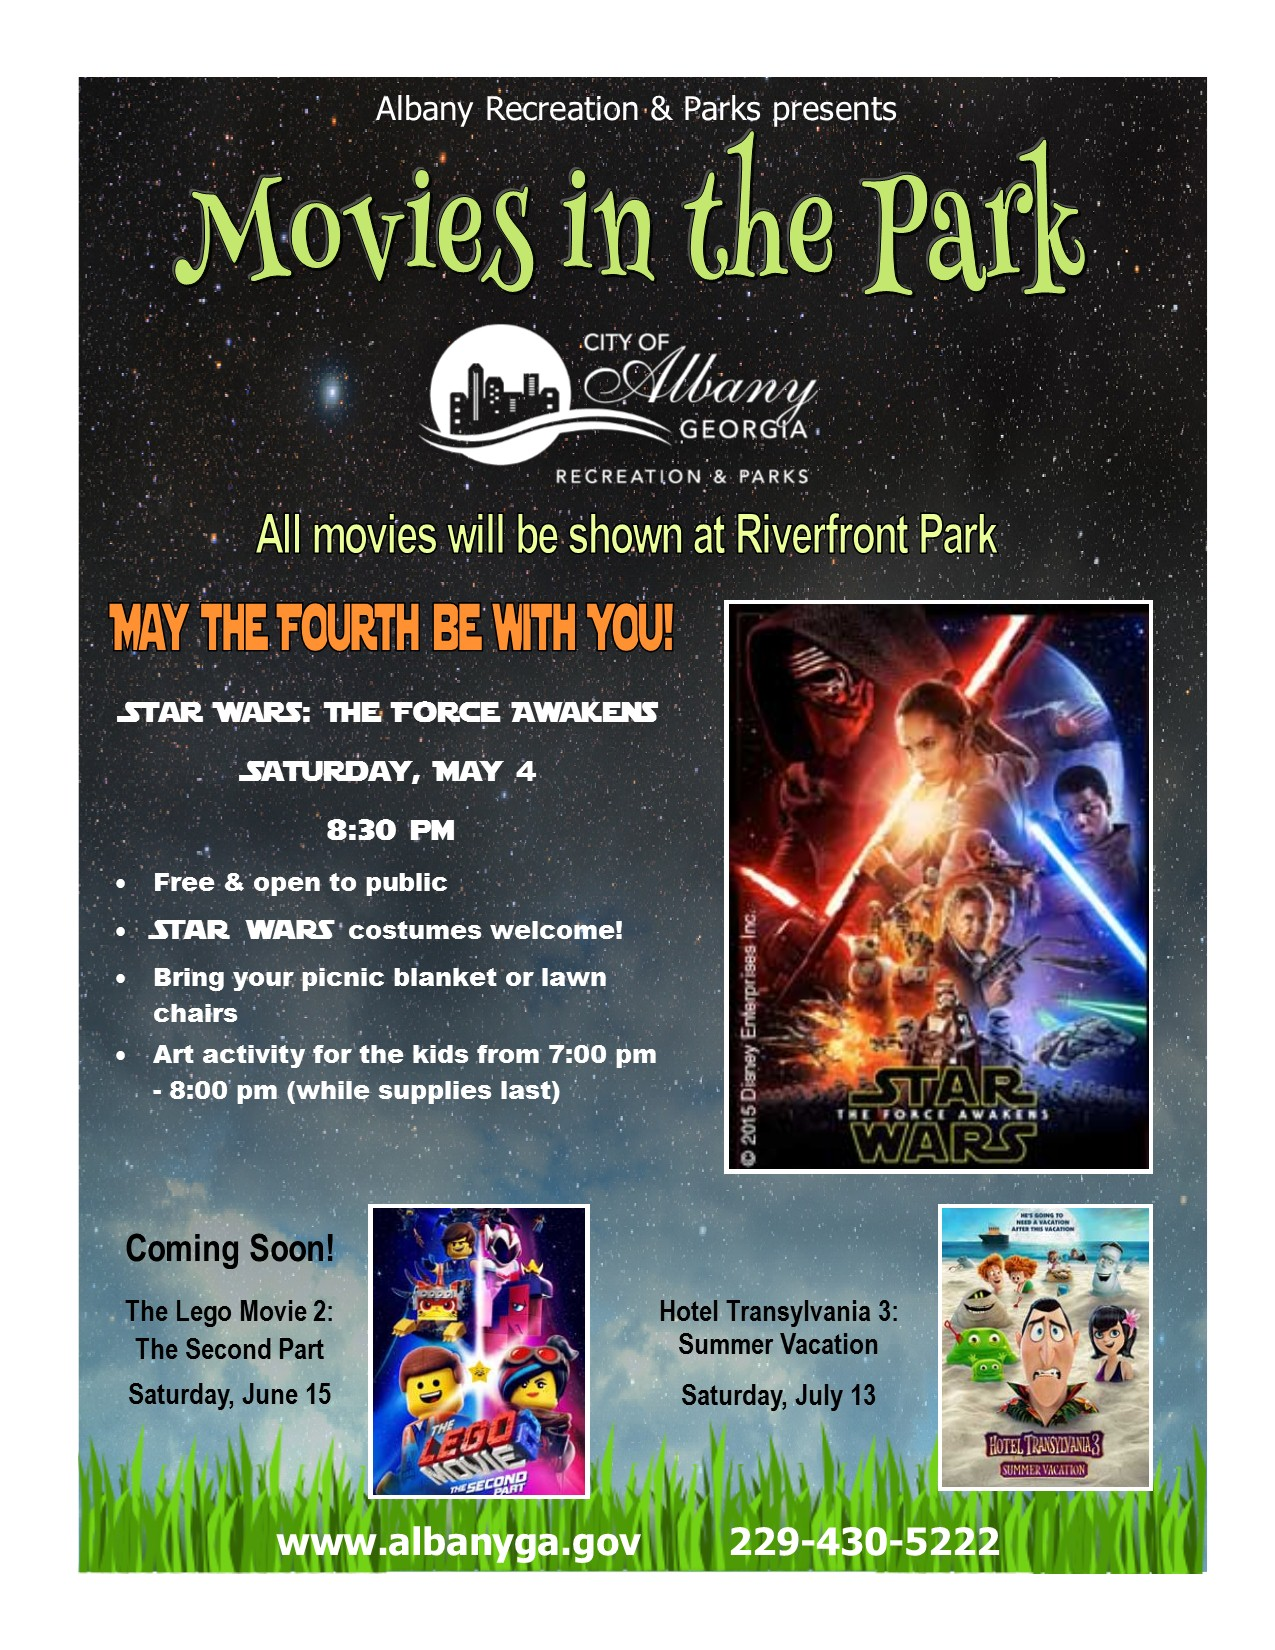 Movies in the Park: The Force Awakens